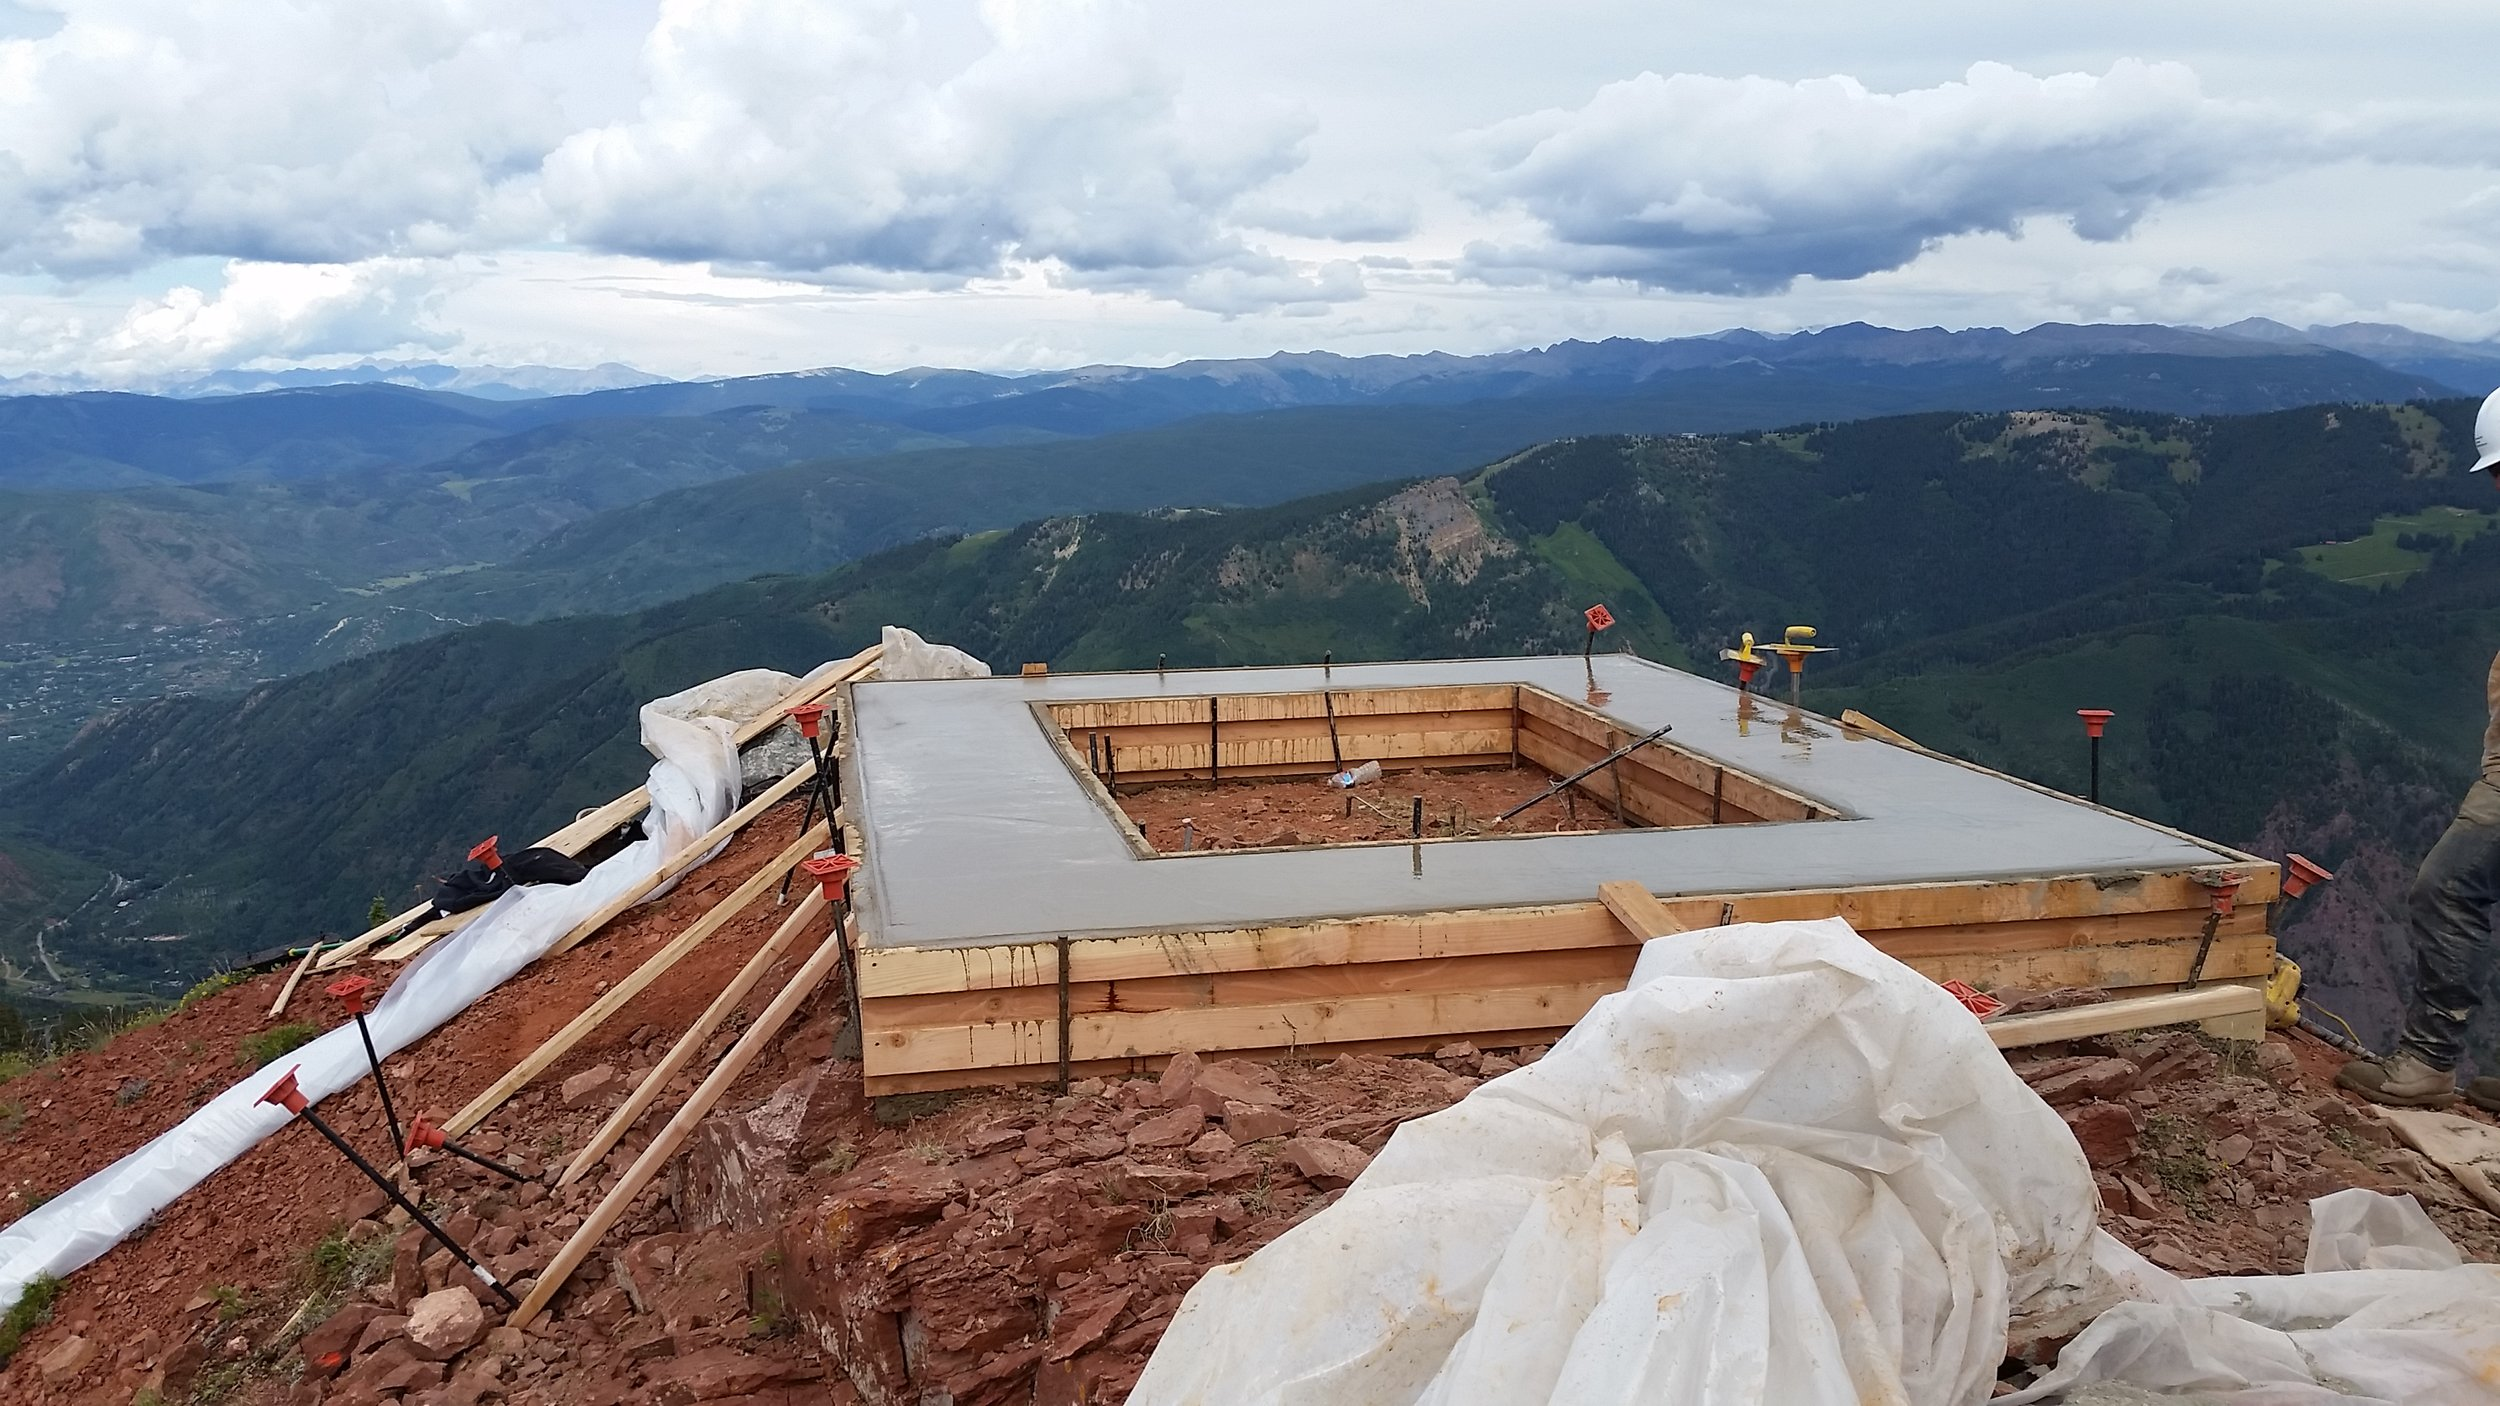 Foundation construction at Loge Peak